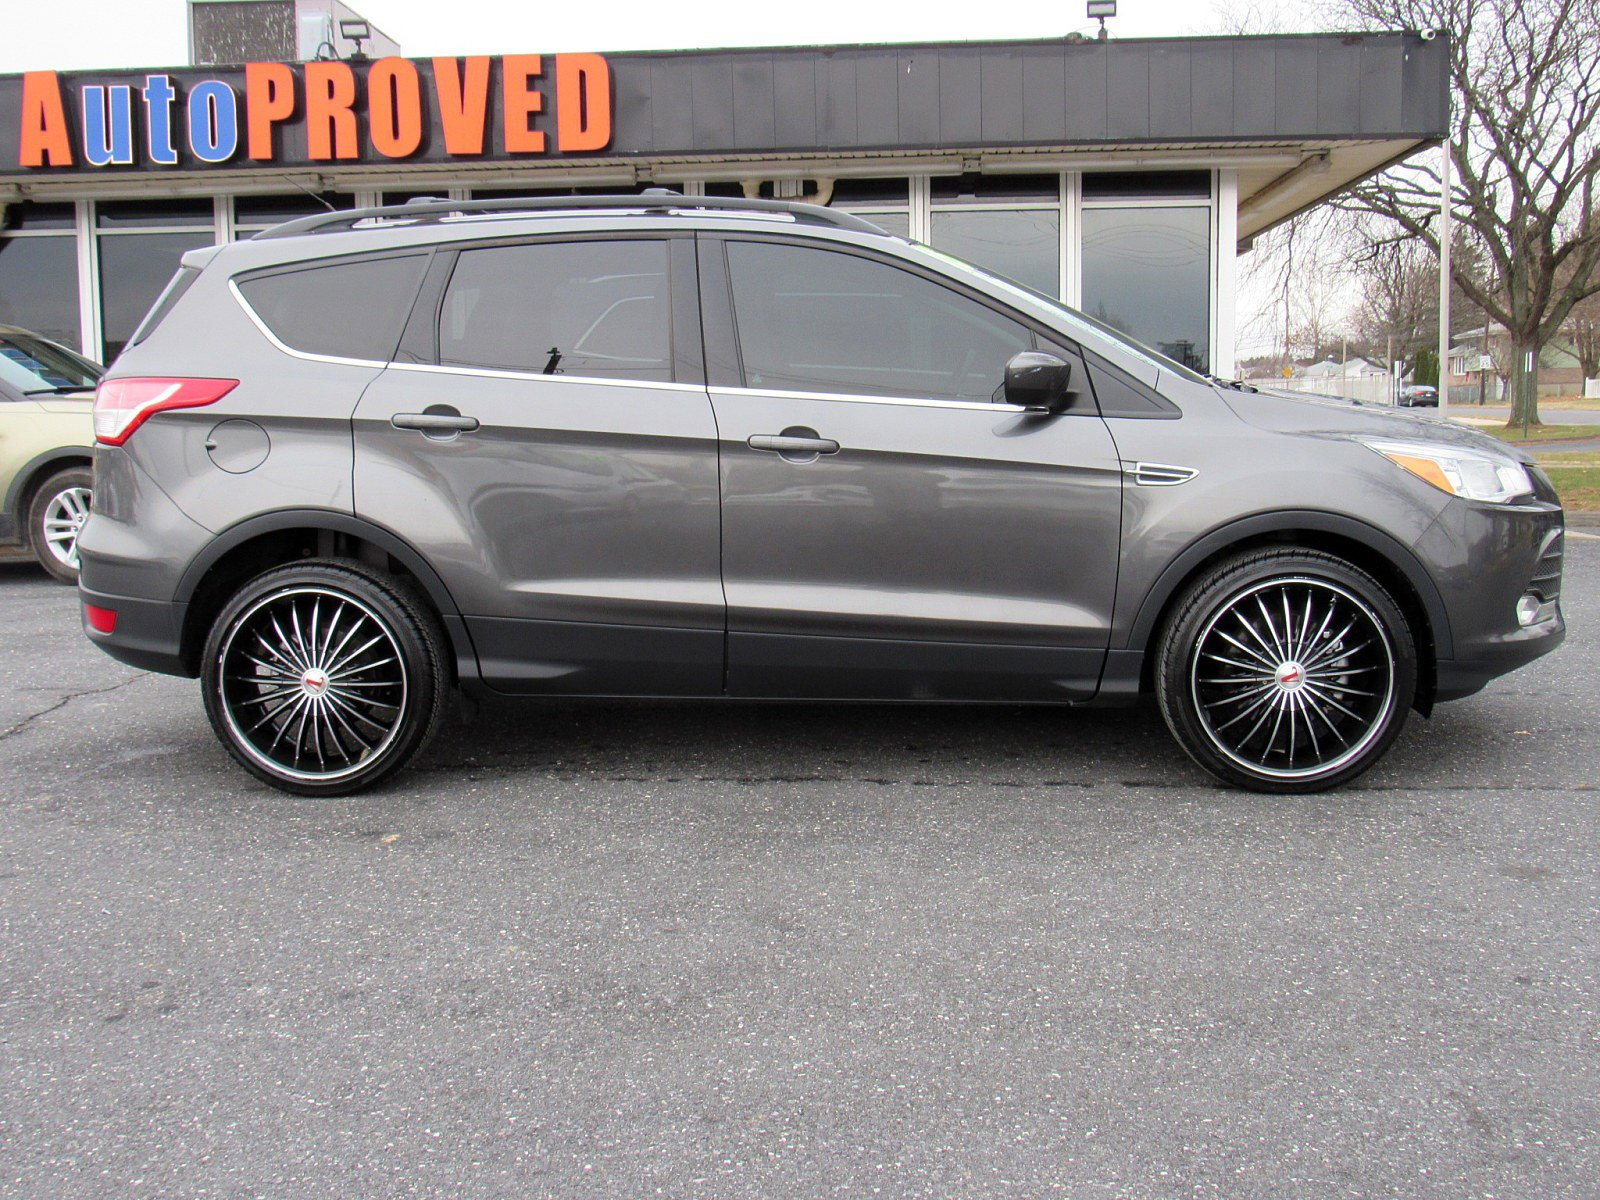 2015 Ford Escape Wagon 4 Dr.